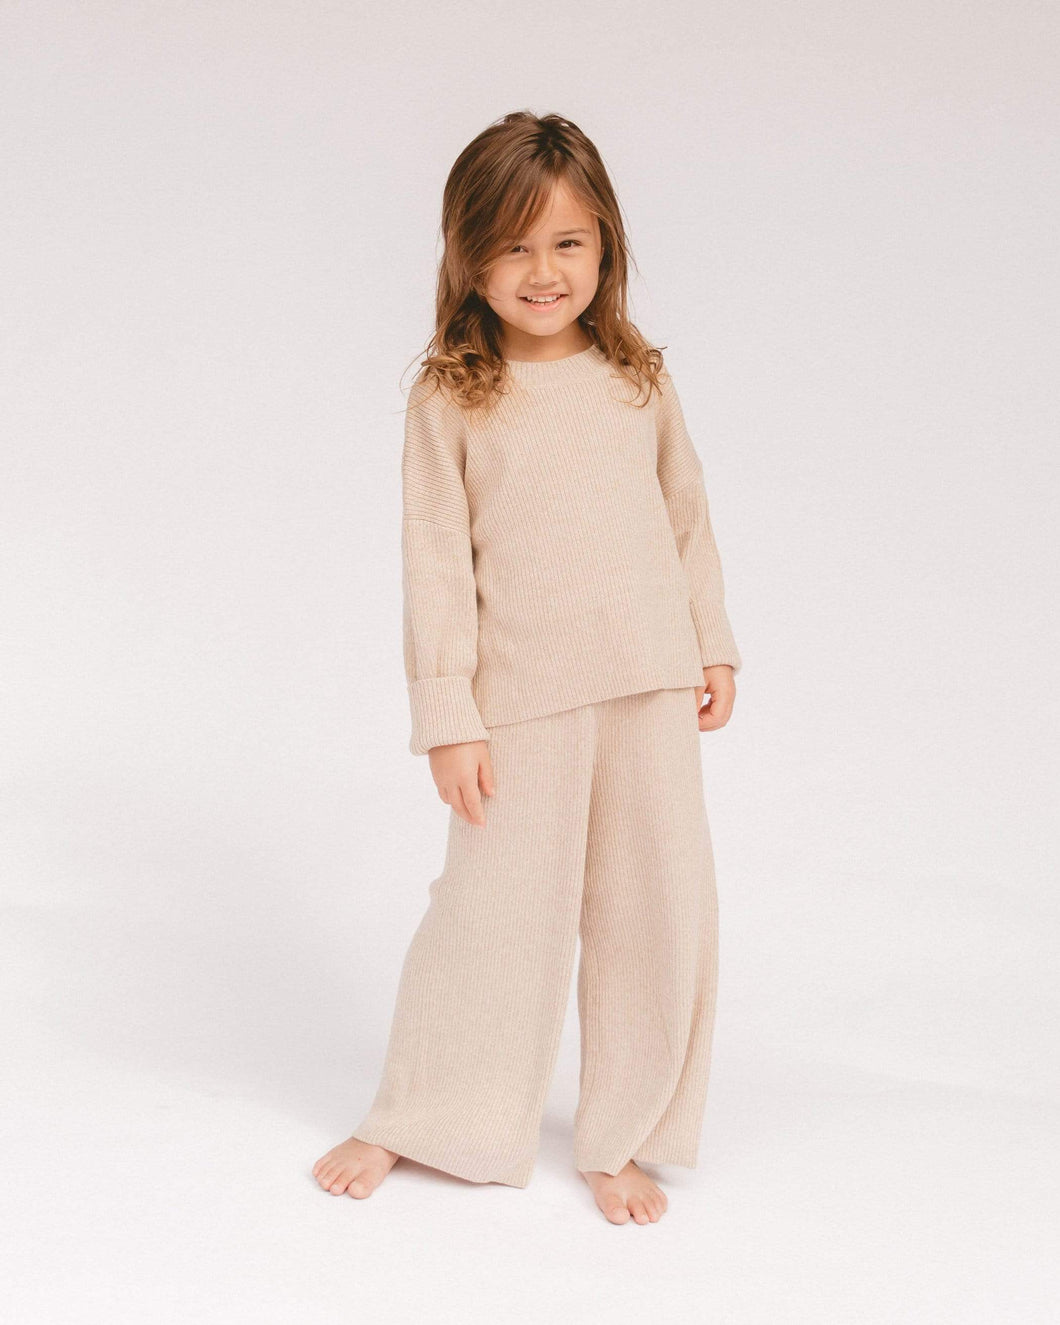 The Lullaby Club Alex Mini Knit Set in Sand